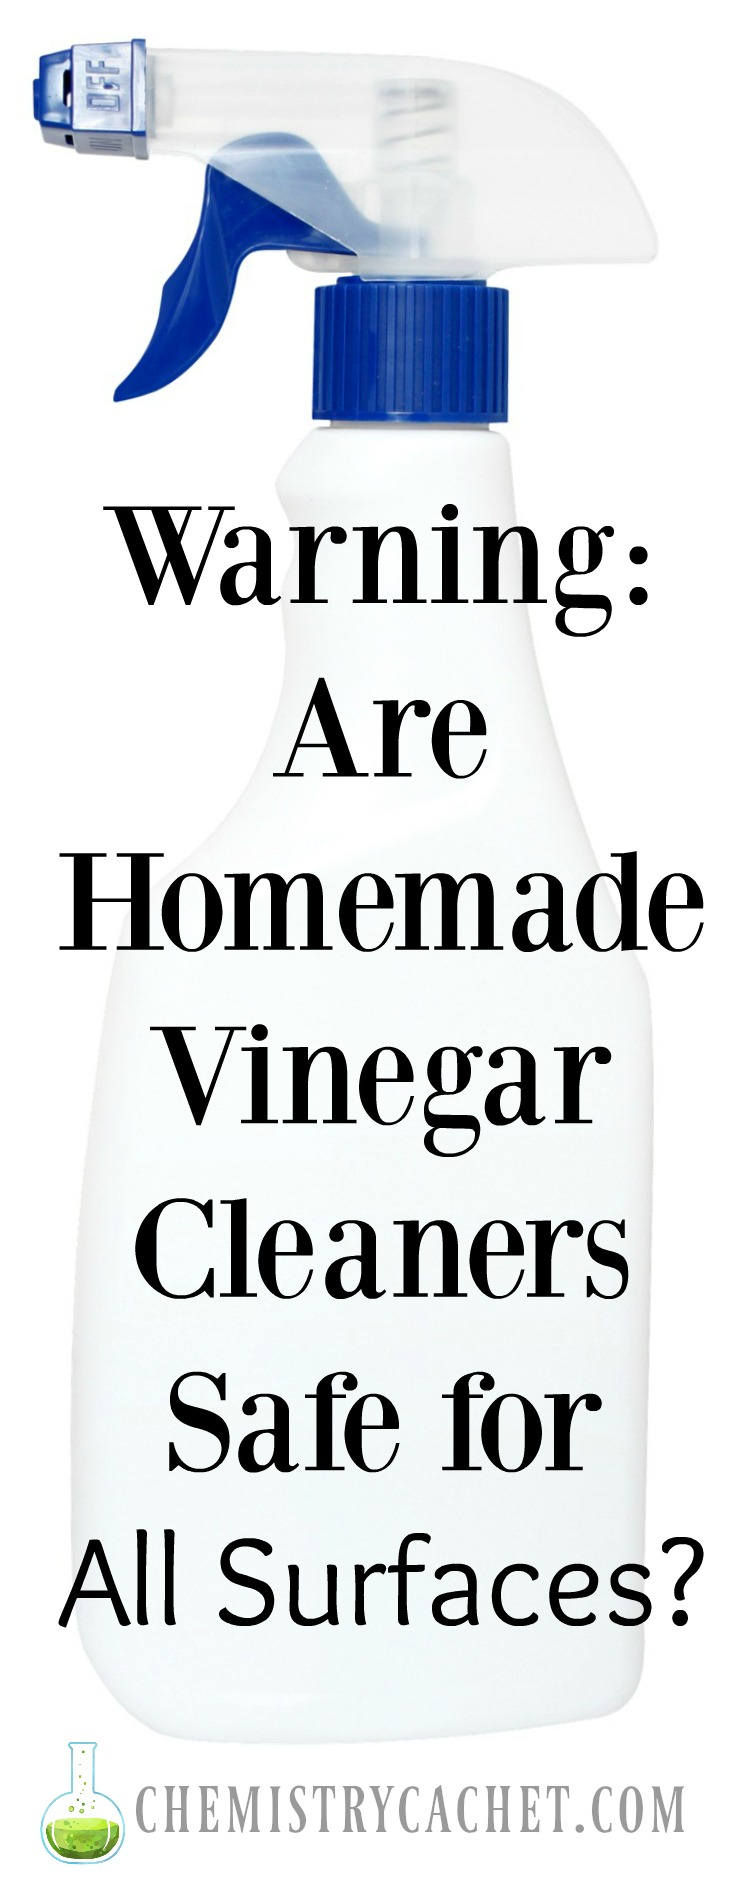 Warning: Are Homemade Vinegar Cleaners Safe for All Surfaces? Chemist tips to help you be safe when using homemade cleaners on chemistrycachet.com